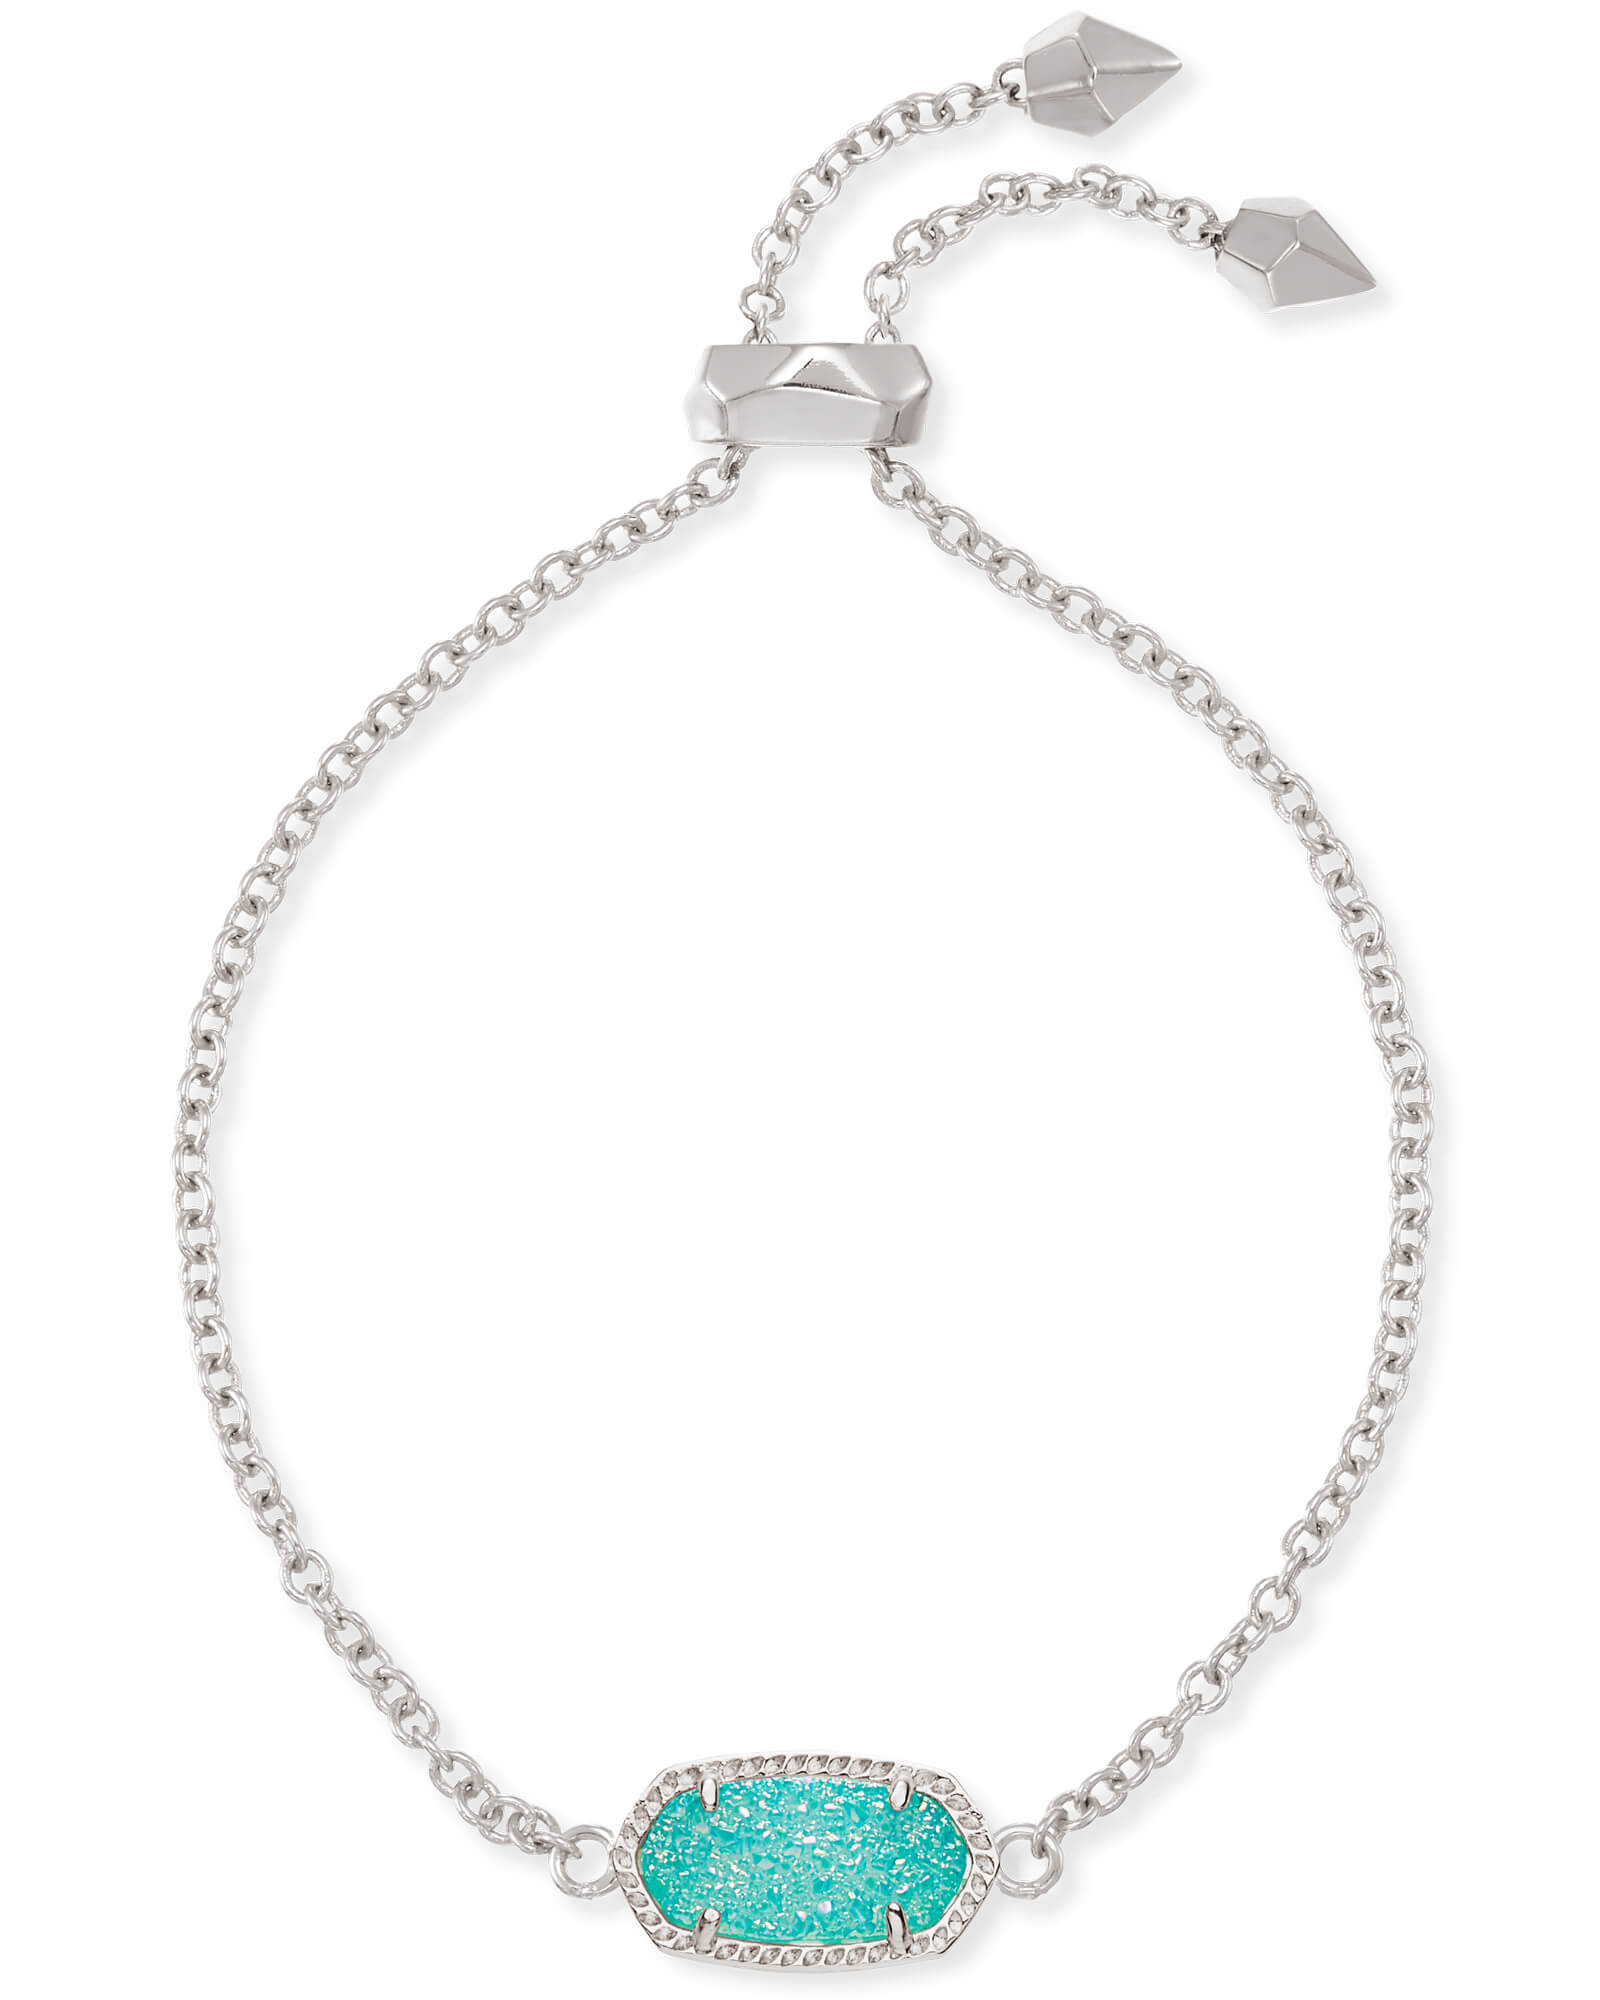 Elaina Silver Adjustable Chain Bracelet in Teal Drusy